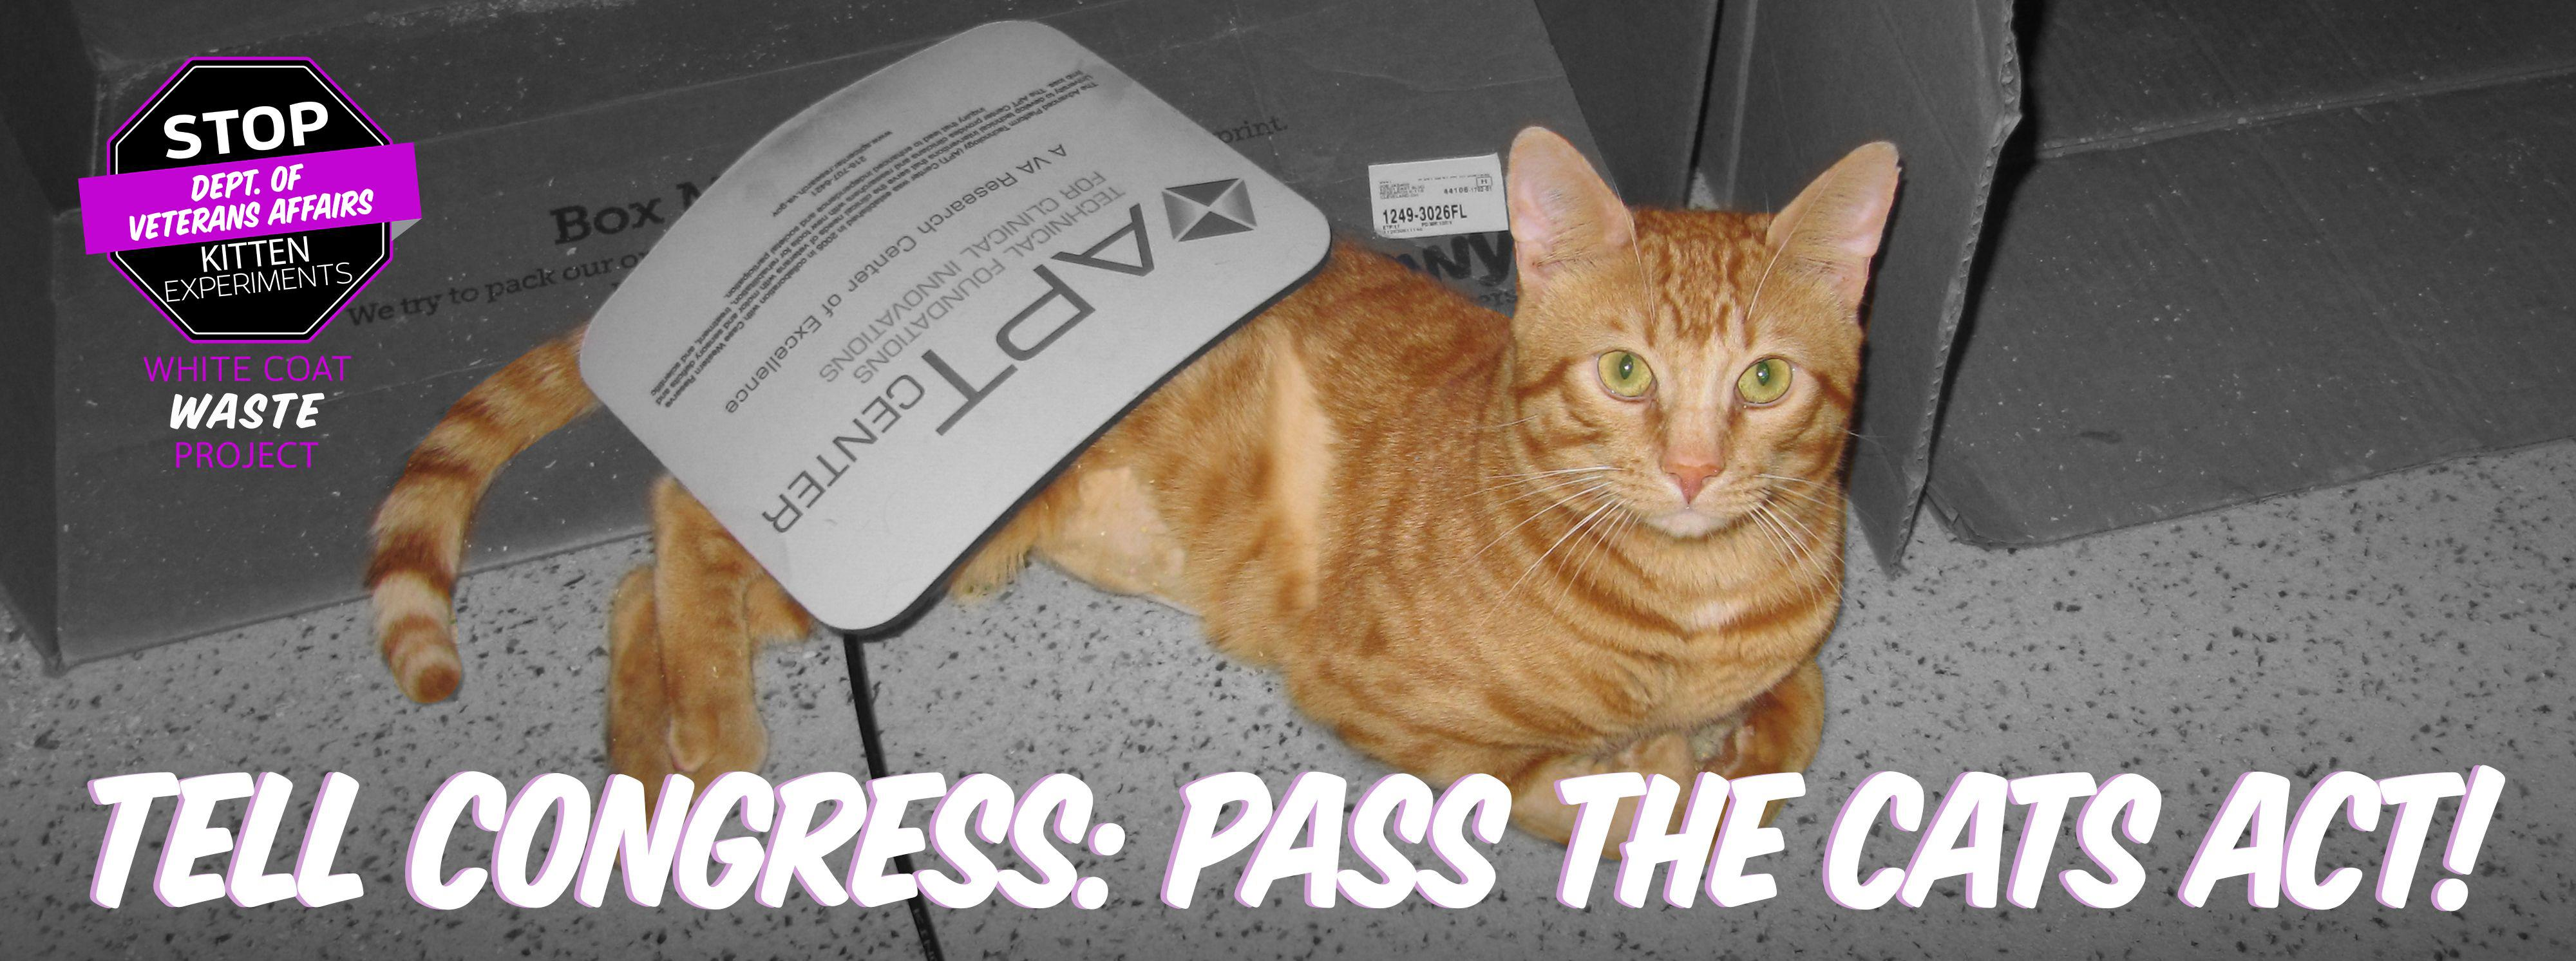 Tell Congress: Pass the Cats Act!